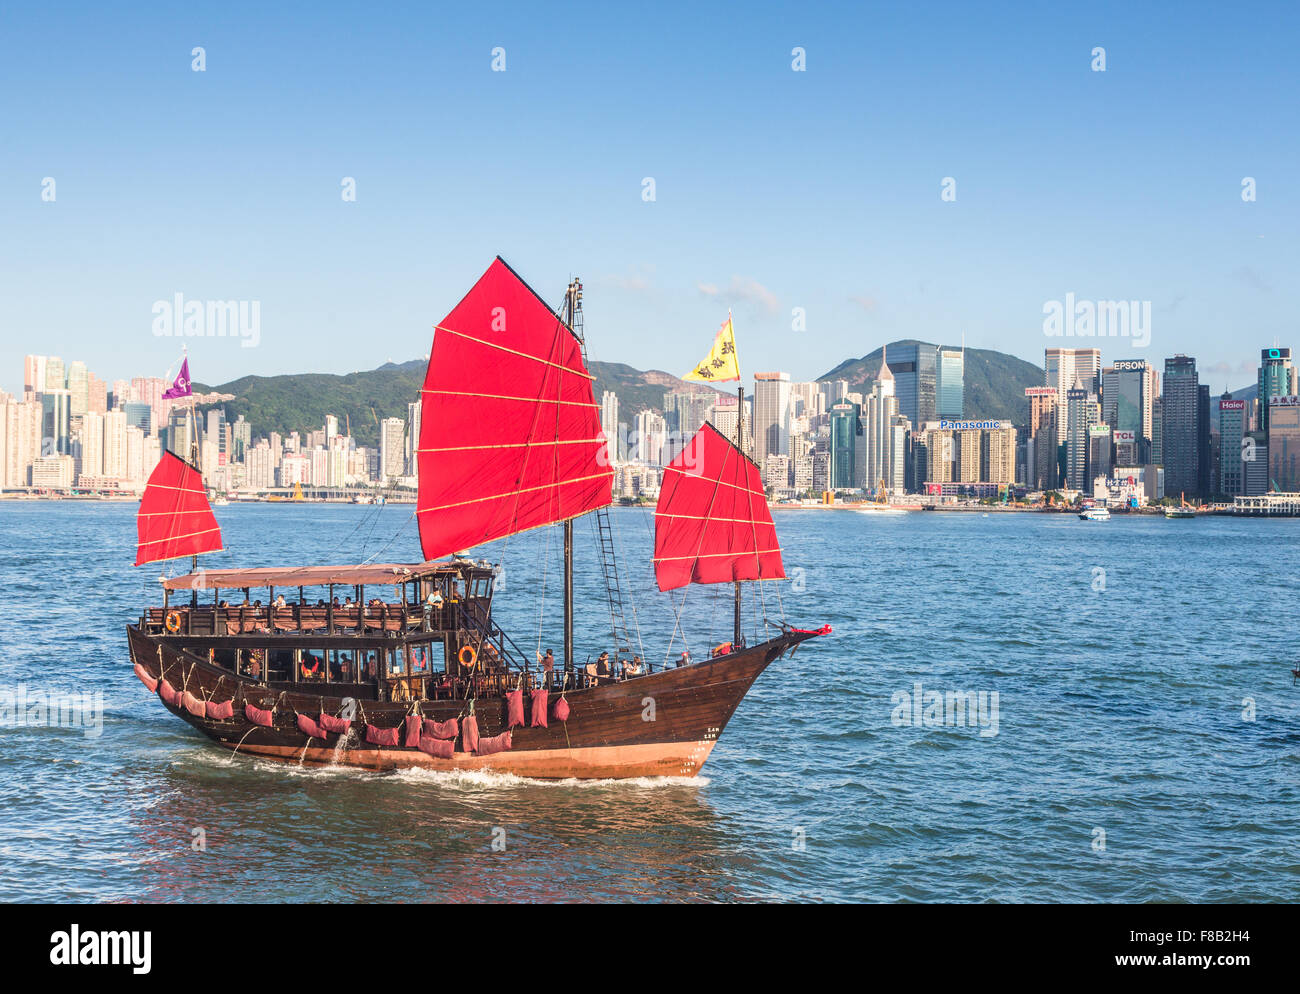 A tourist boat, build as a traditional Chinese junk, sails in Victoria harbor in Hong Kong - Stock Image